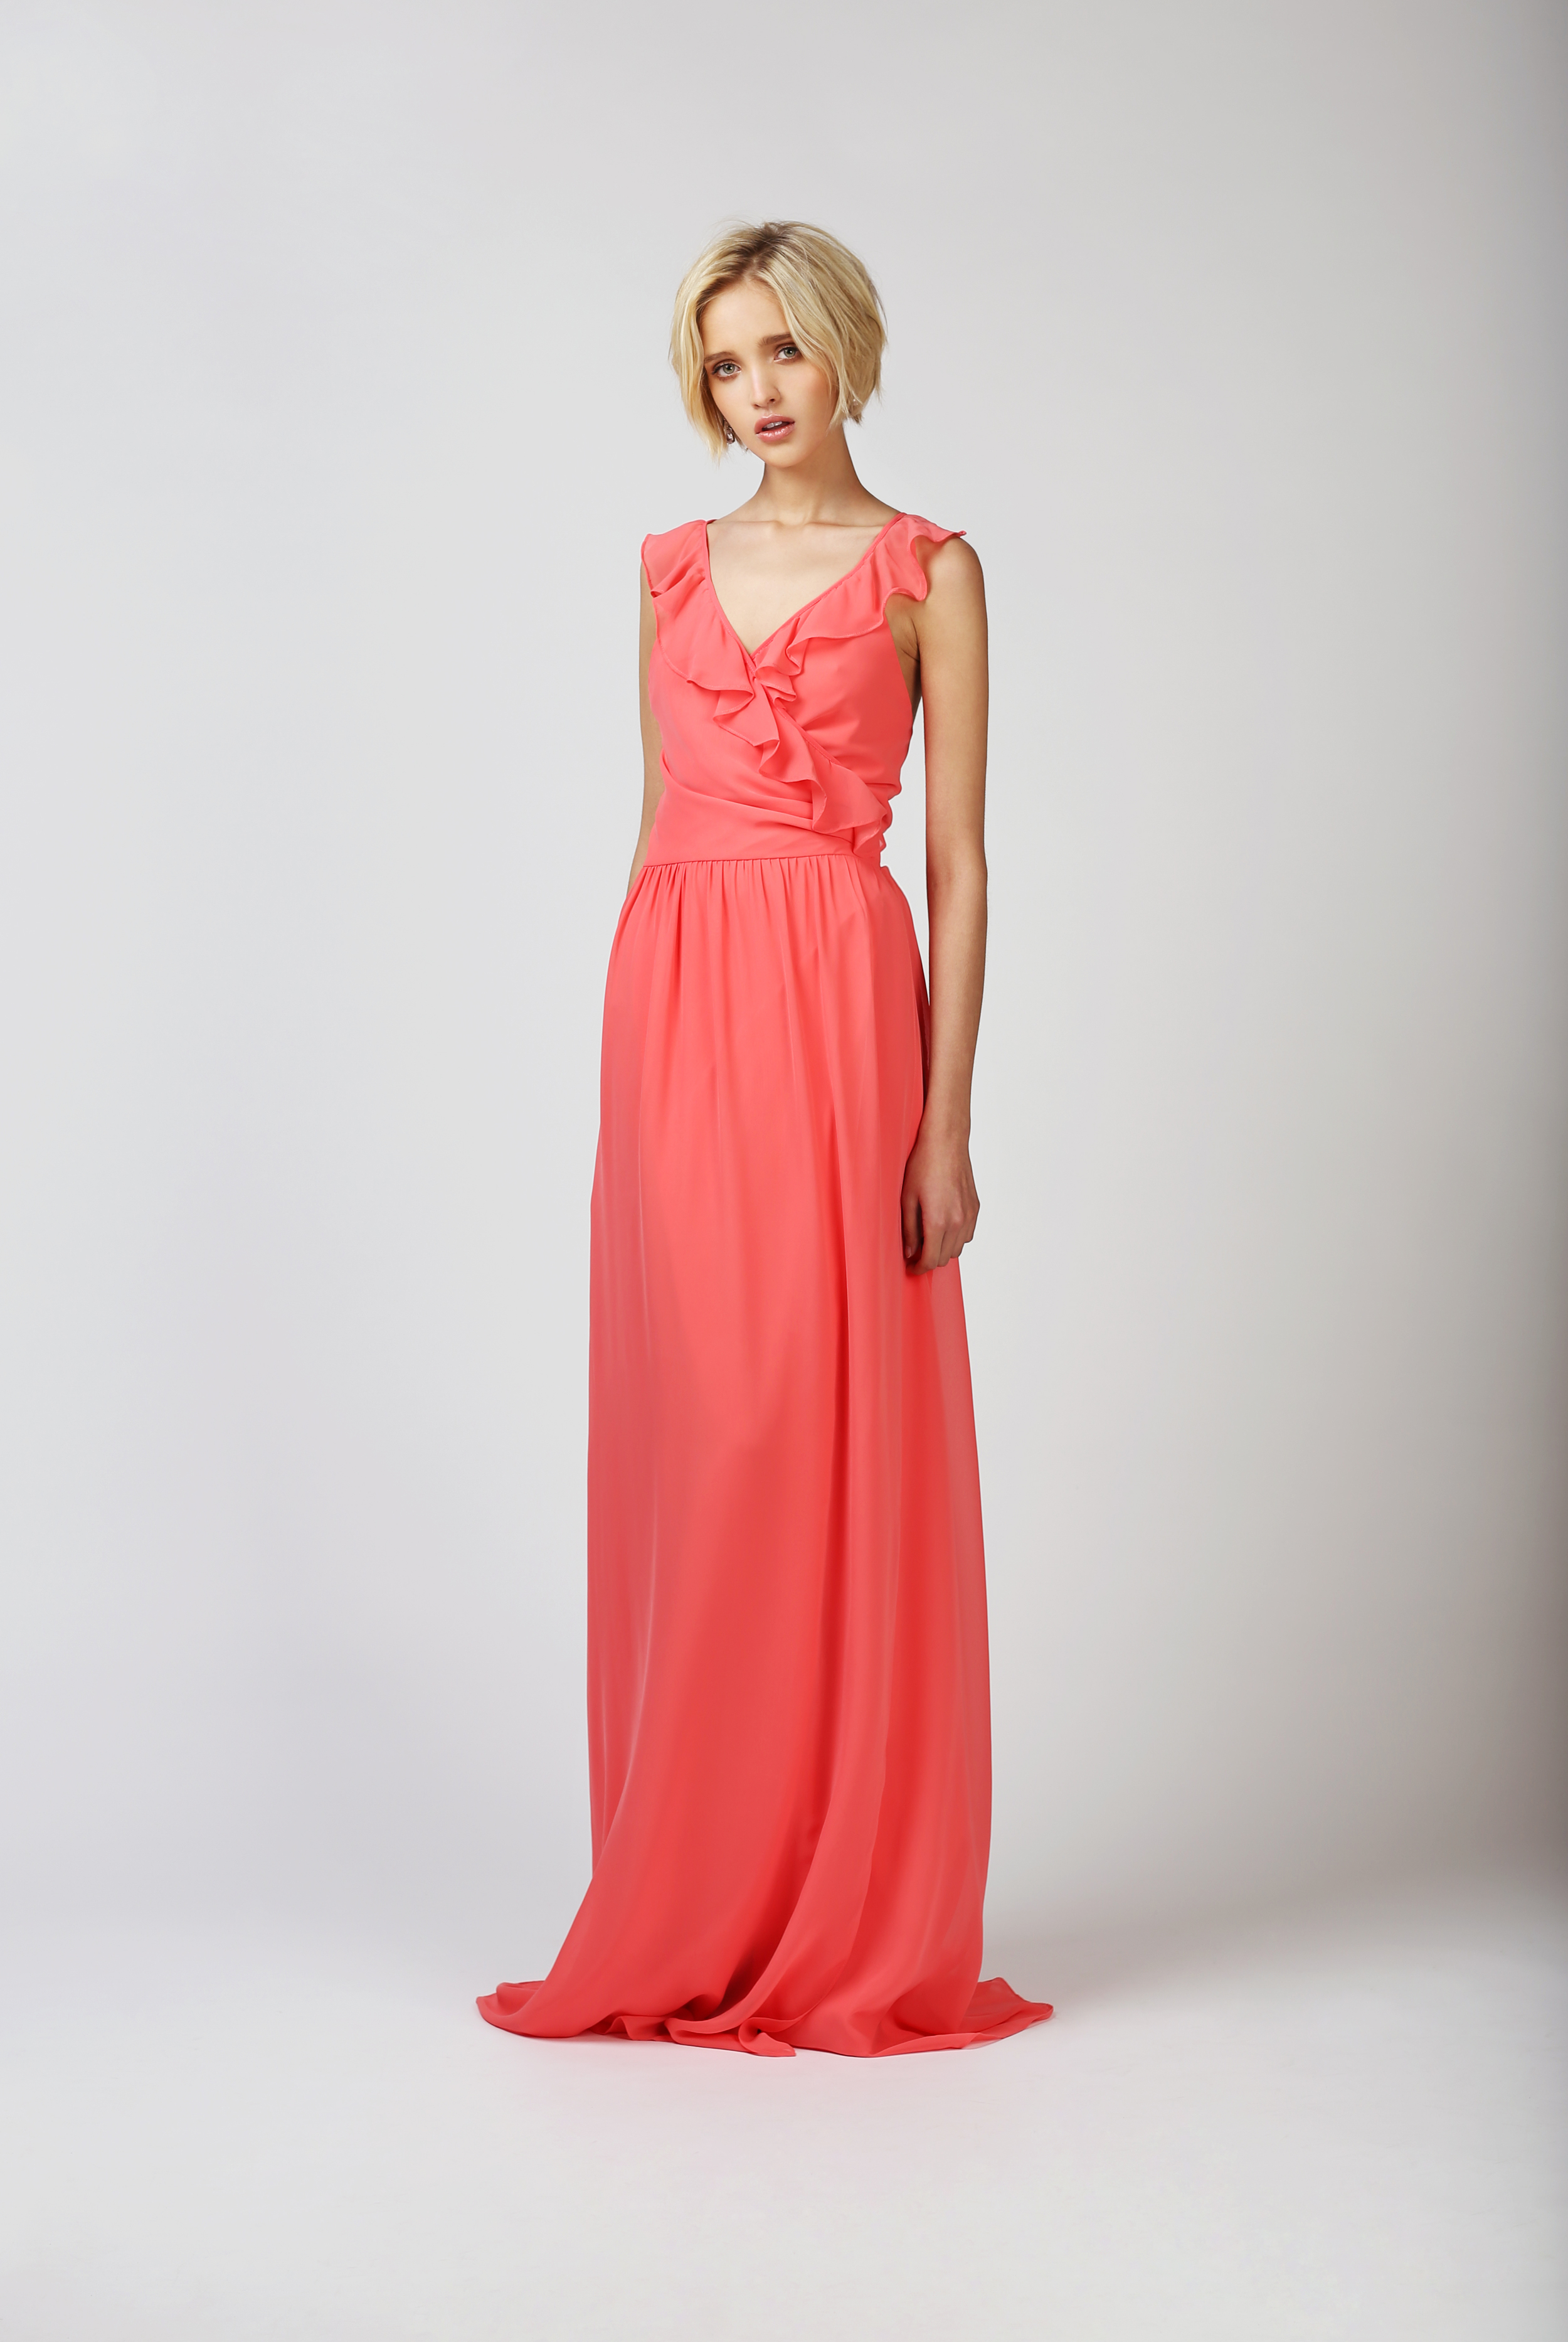 TWO BIRDS BALL GOWN, CORAL